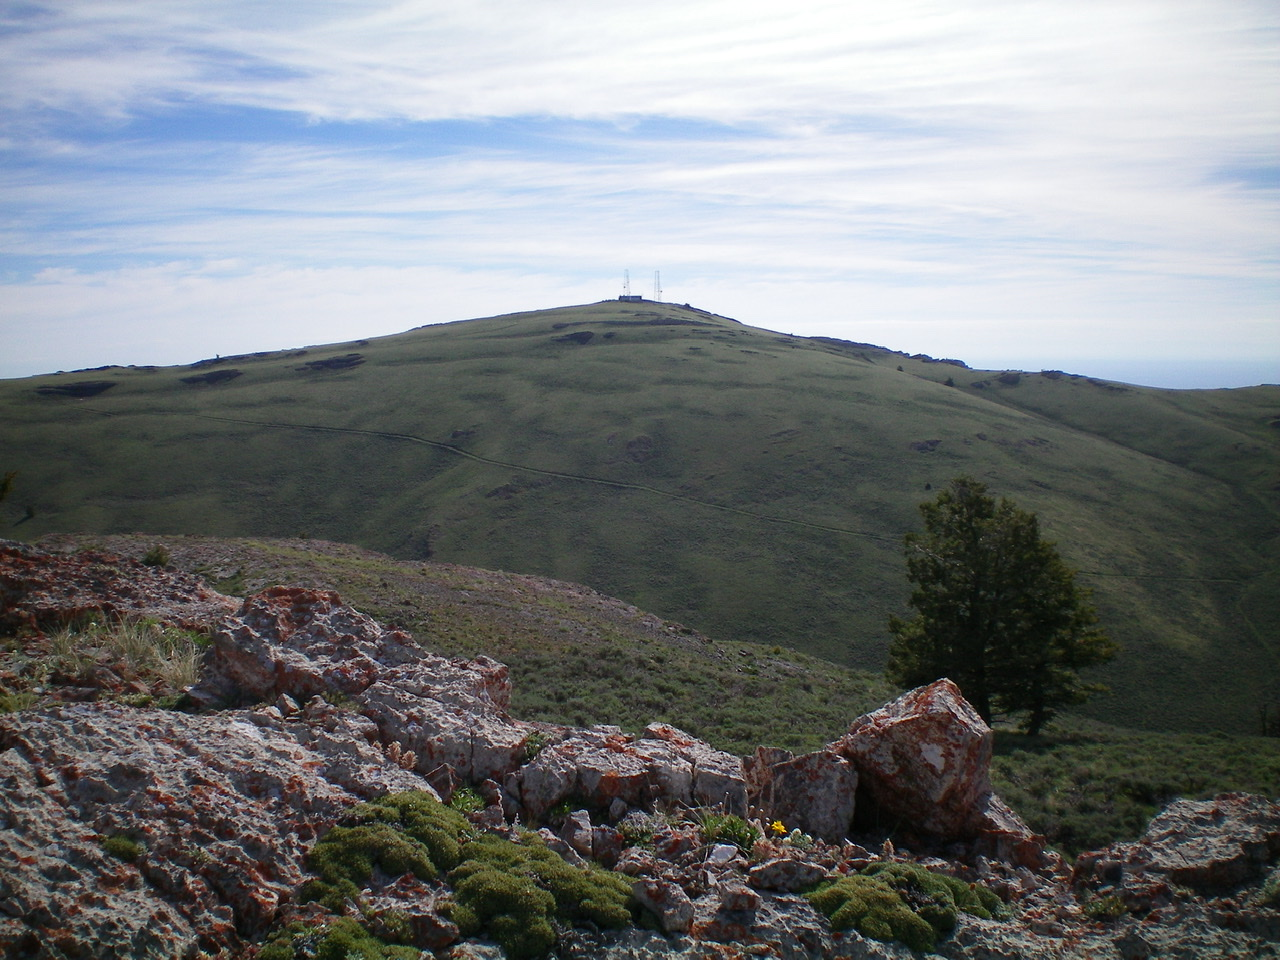 The West Face of Howe Peak as viewed from the summit of Peak 8603. Livingston Douglas Photo